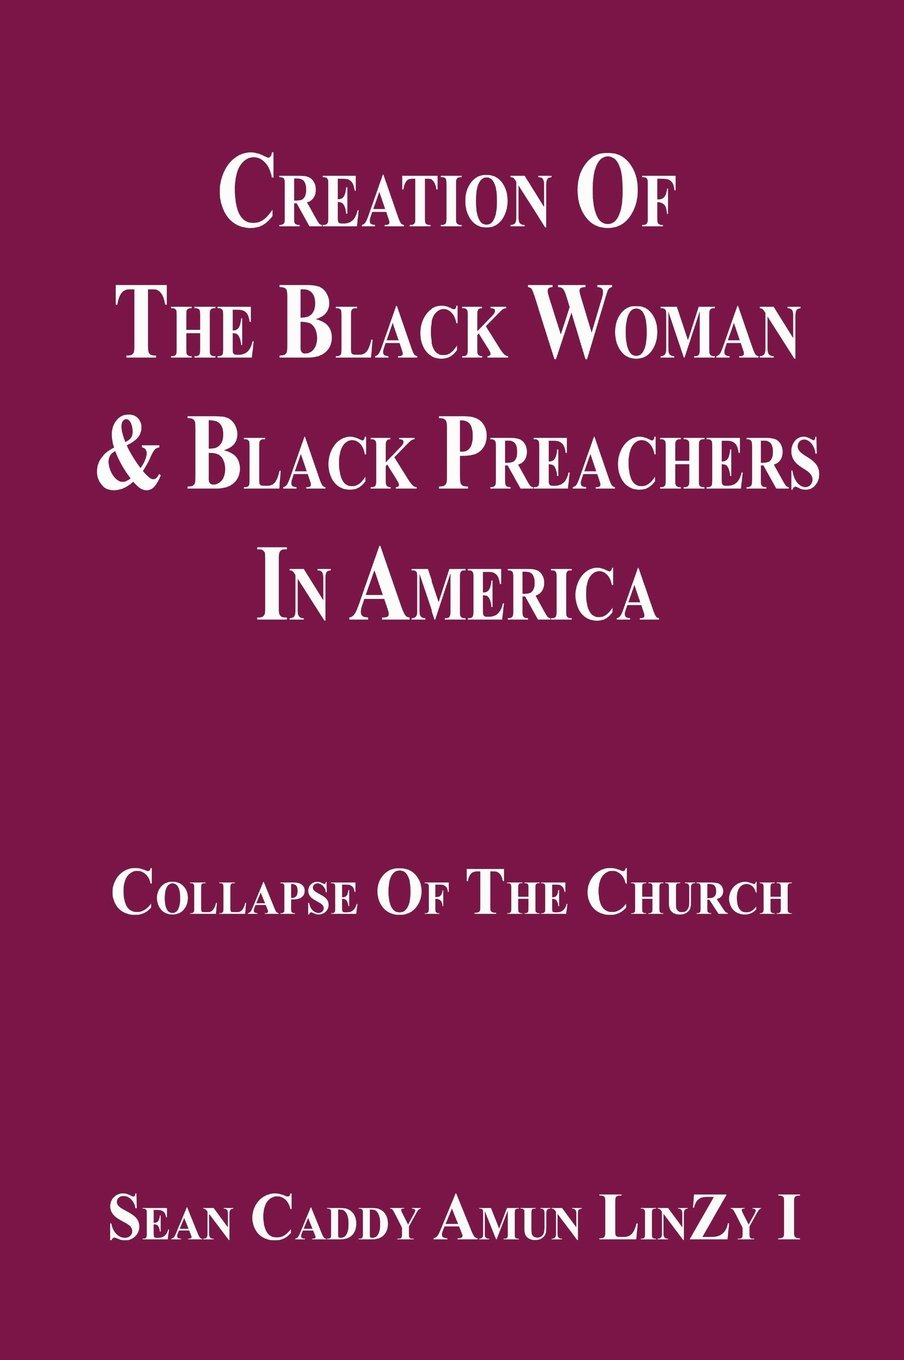 Download Creation Of The Black Woman & Black Preachers In America Collapse Of The Church pdf